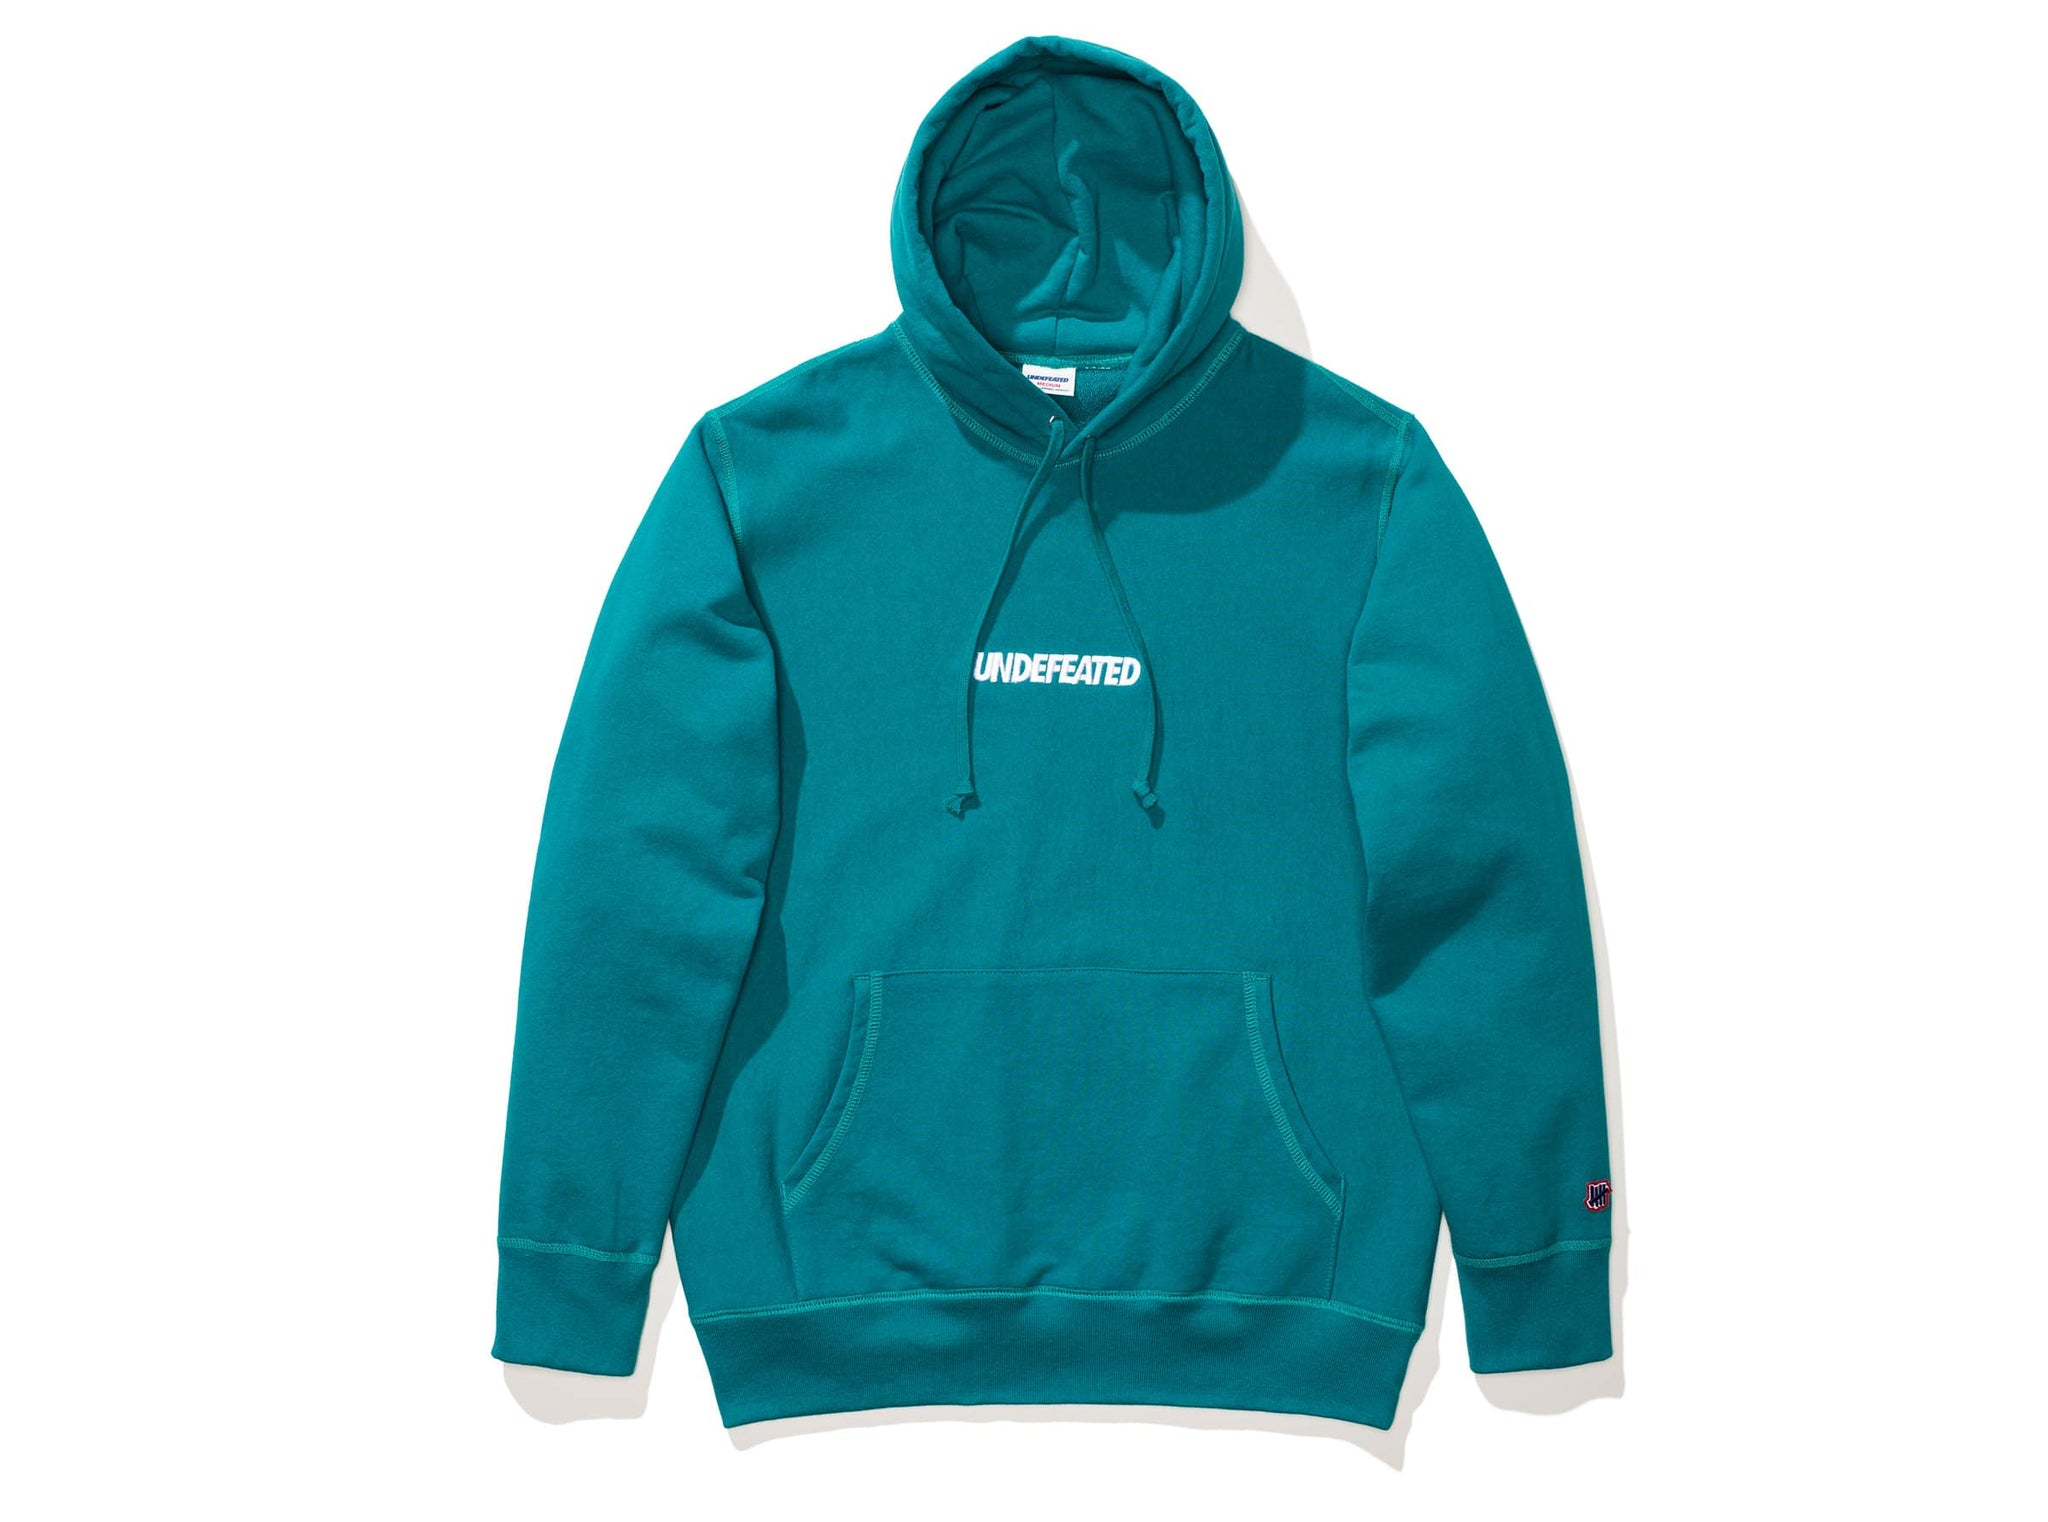 UNDEFEATED LOGO PULLOVER HOODIE